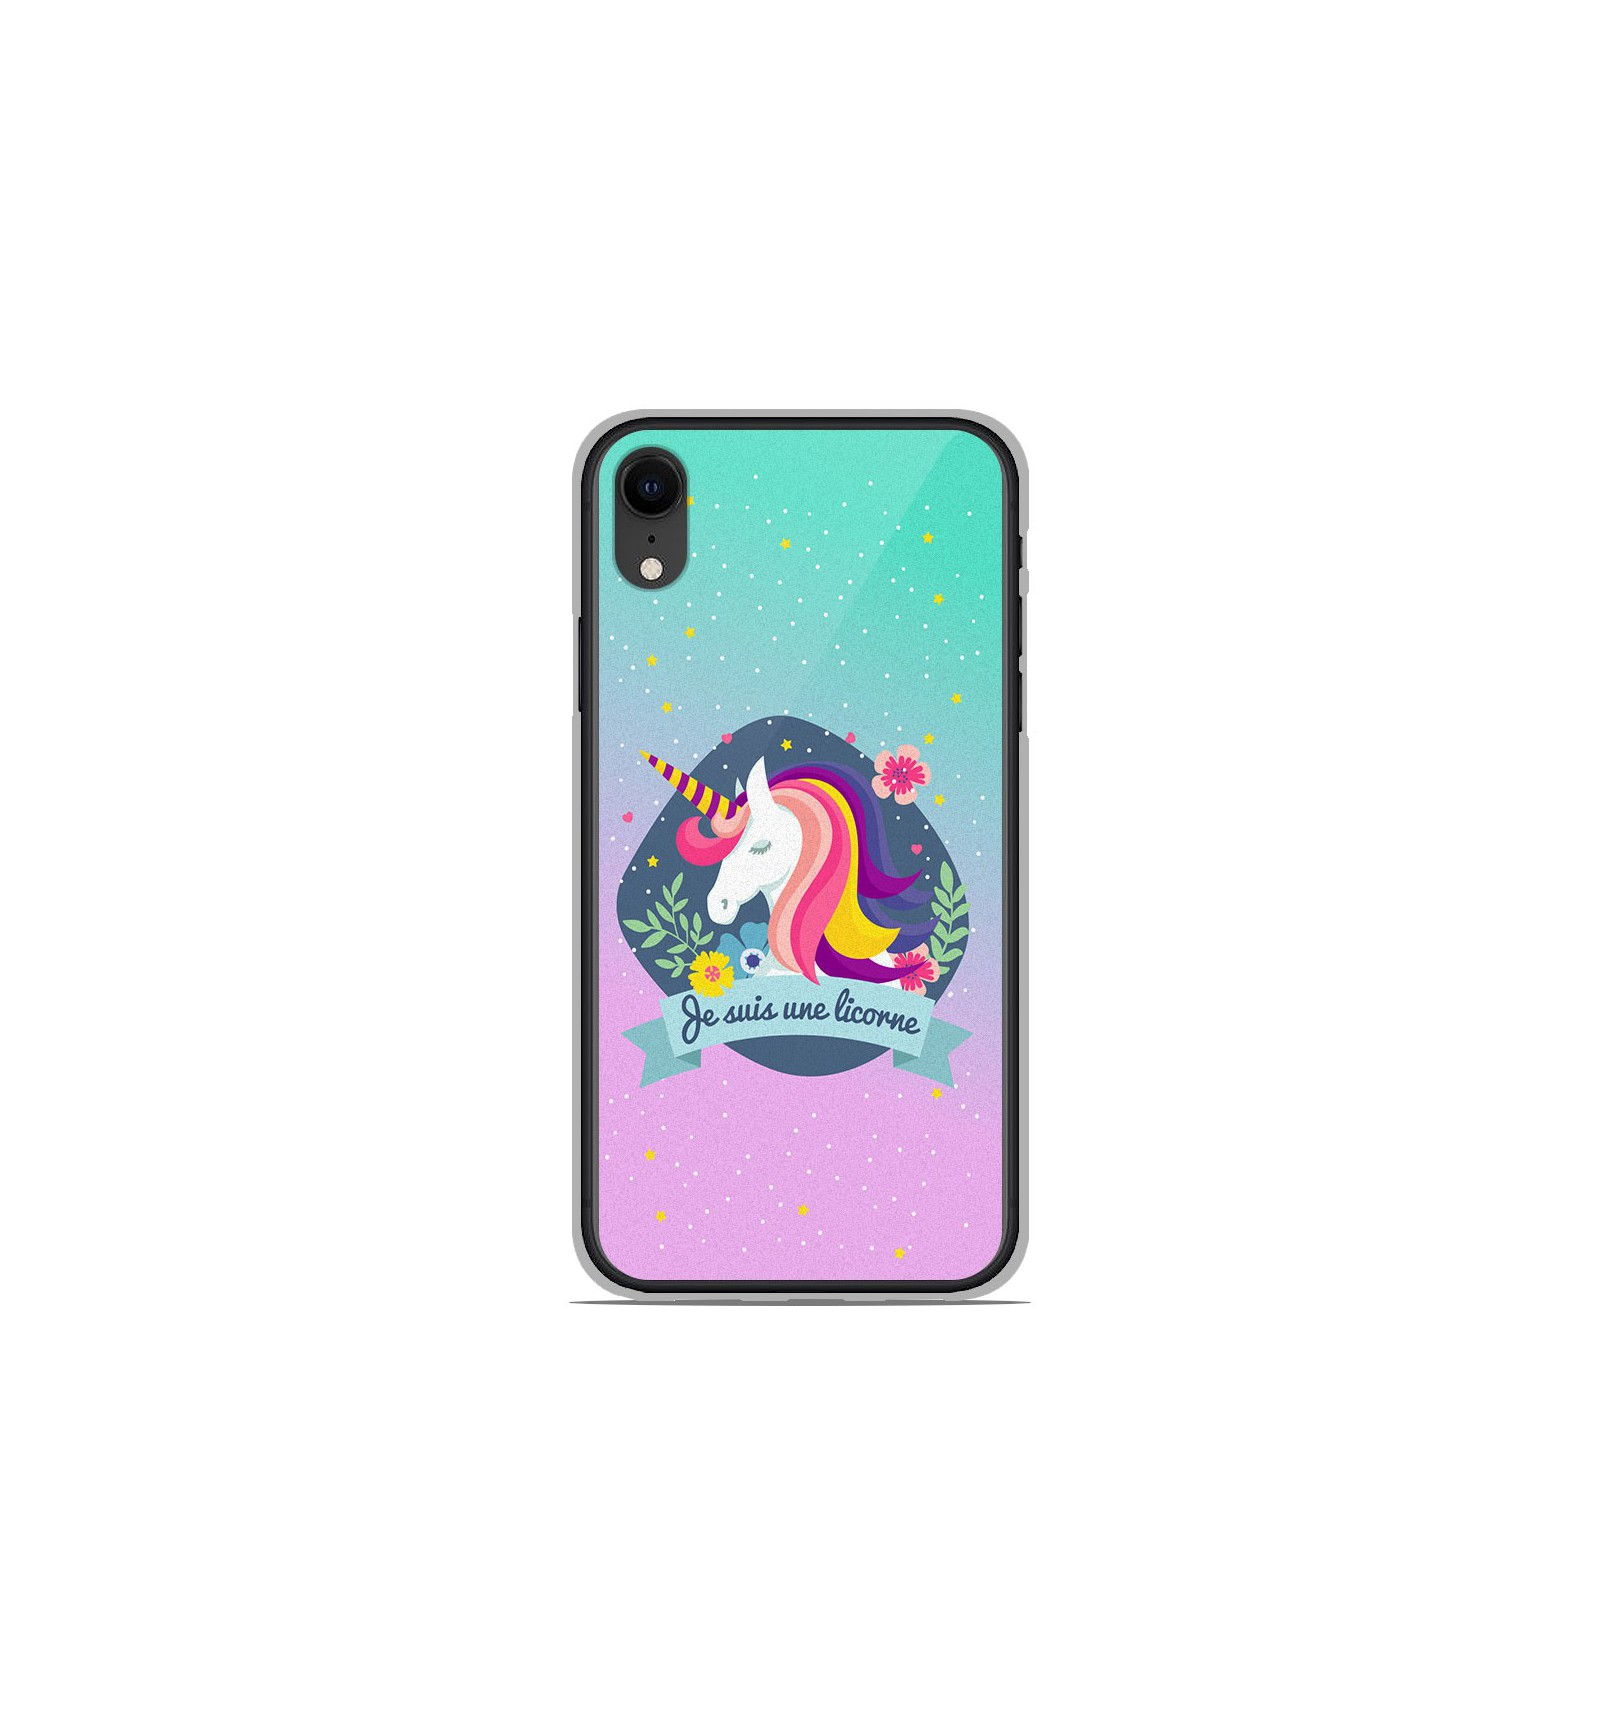 coque iphone xr silicone licorne